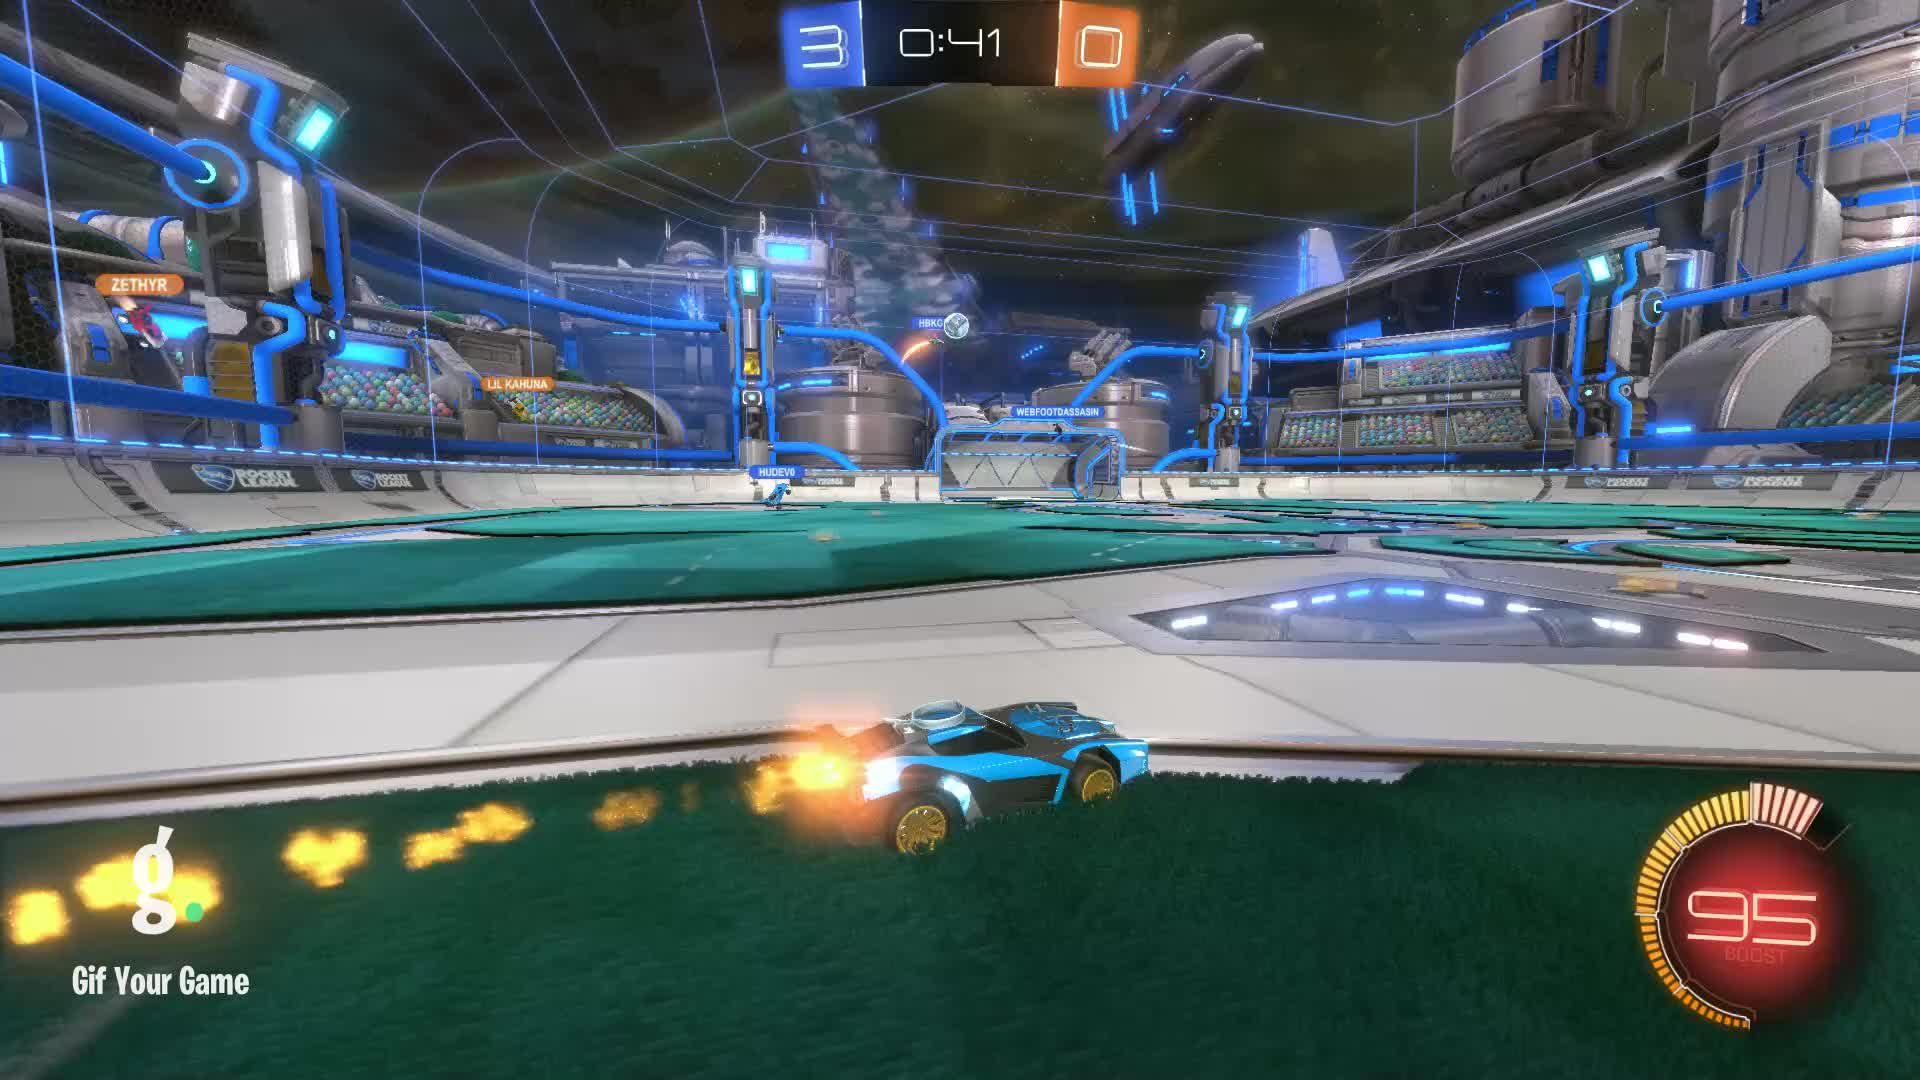 Assist, Gif Your Game, GifYourGame, Moki, Rocket League, RocketLeague, Assist 2: Moki GIFs